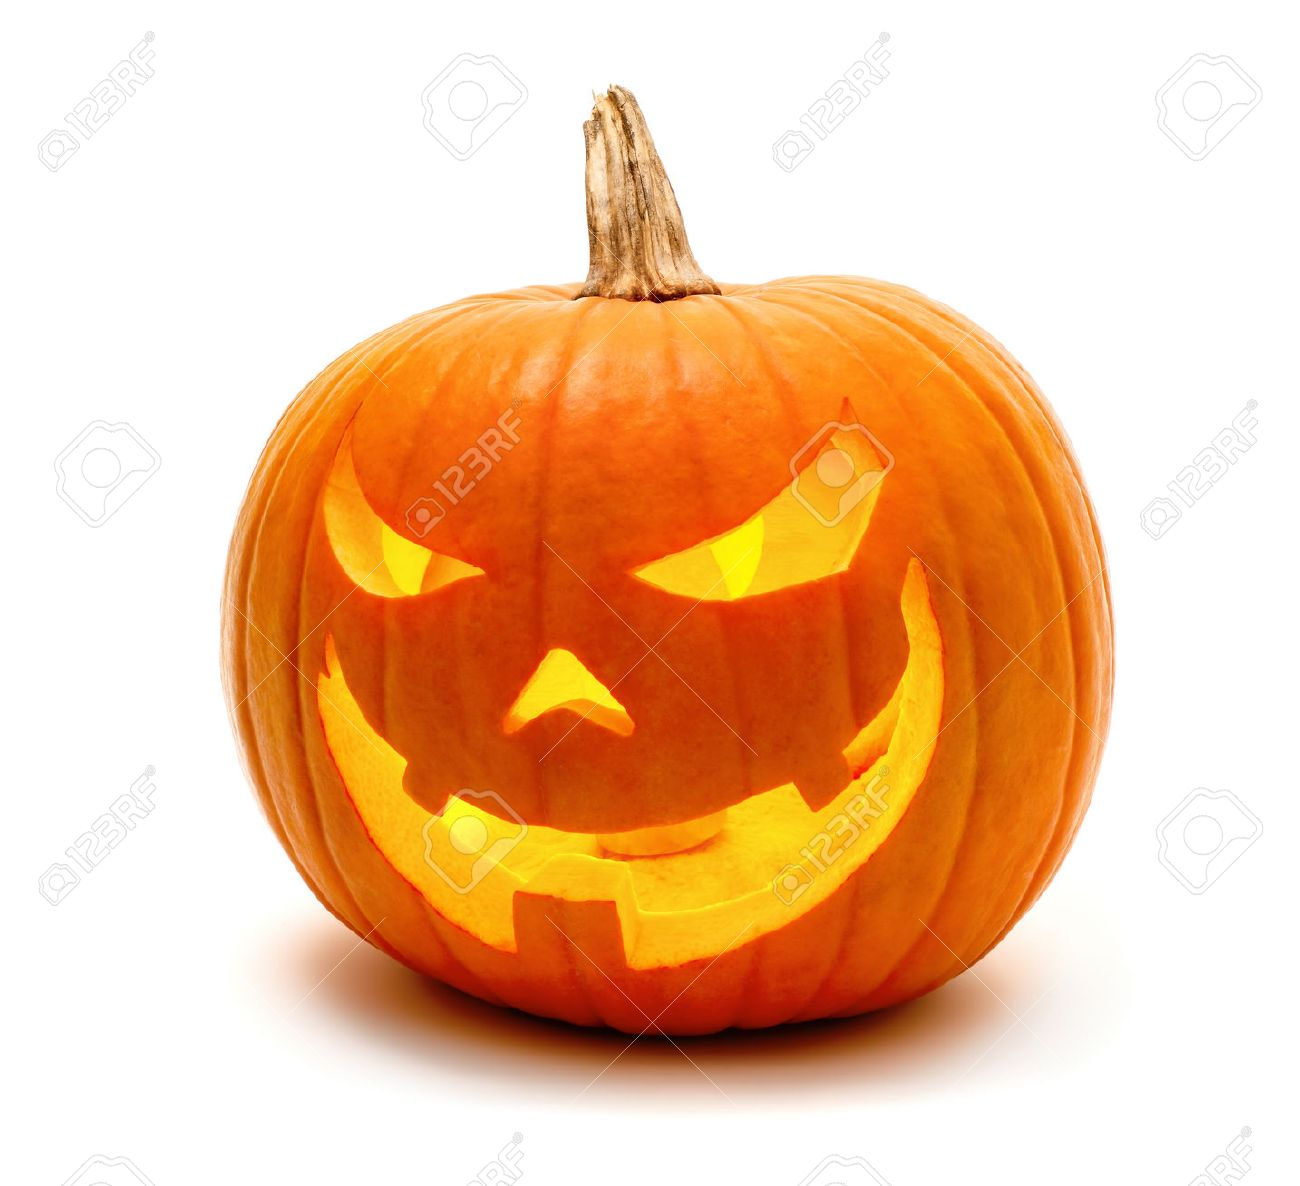 Jack o Lantern Halloween pumpkin grinning in the most evil fashion, isolated on white - 44712852